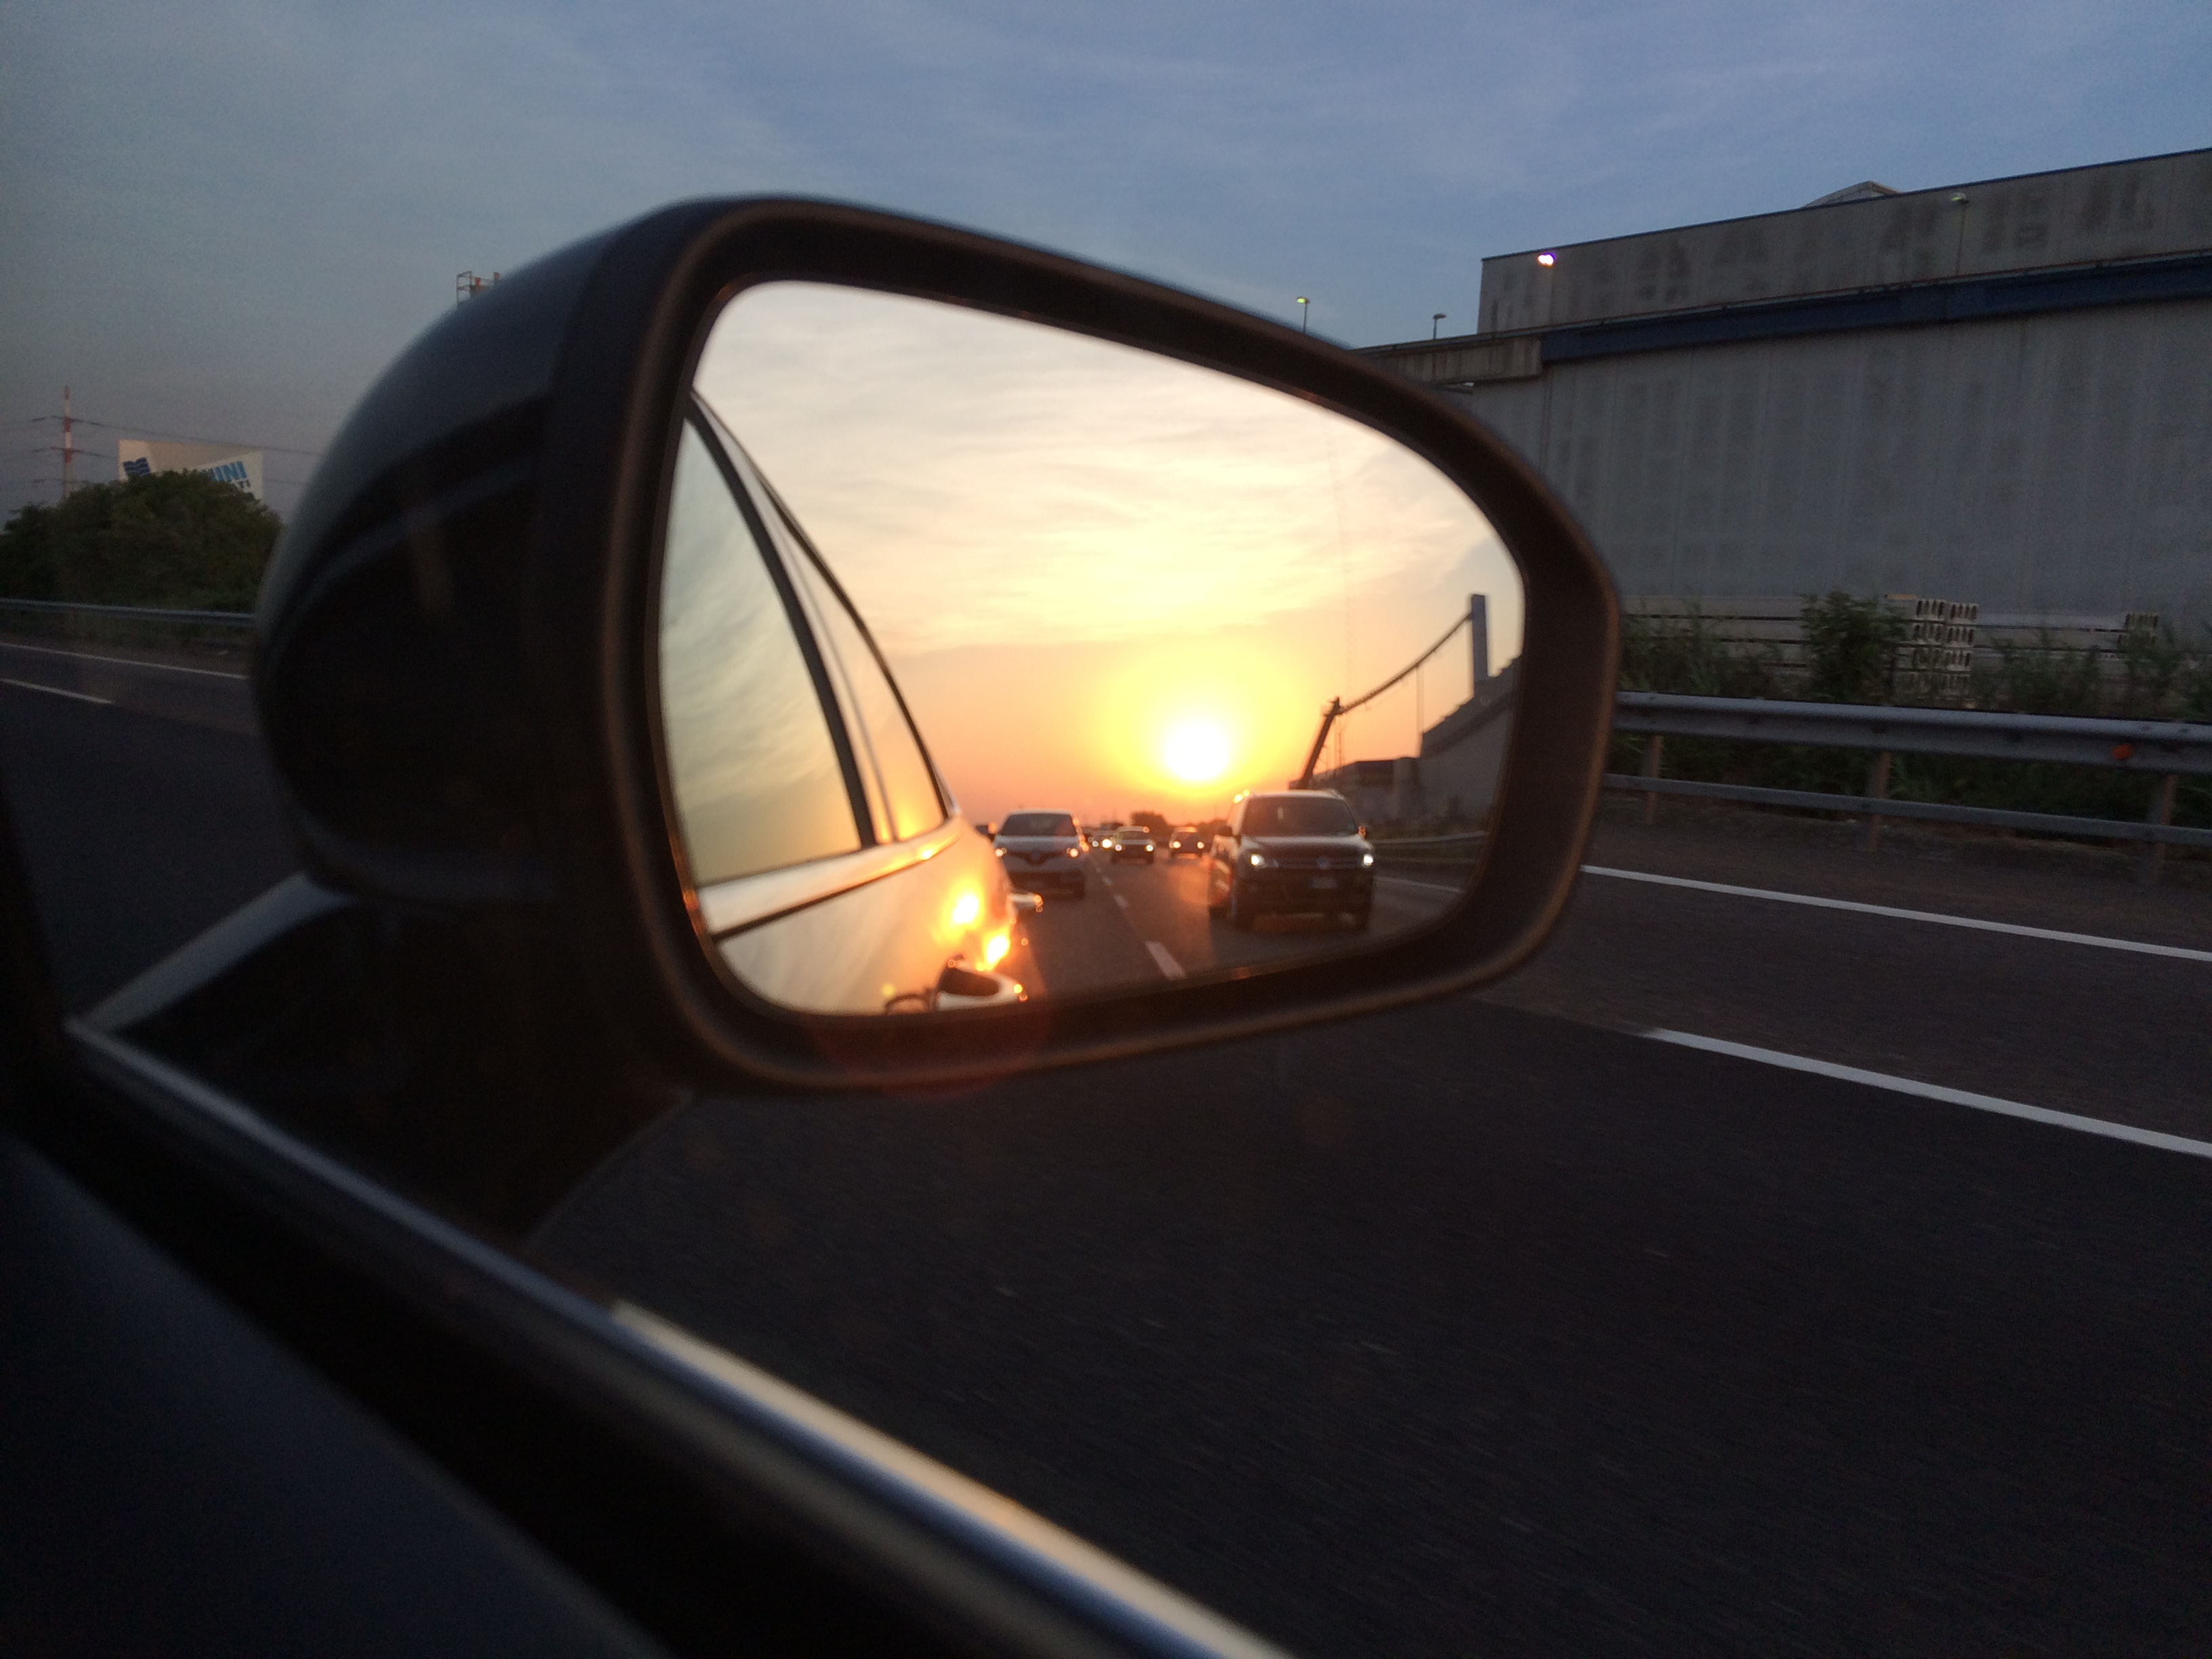 Sunset over Milan viewed through a car wing mirror